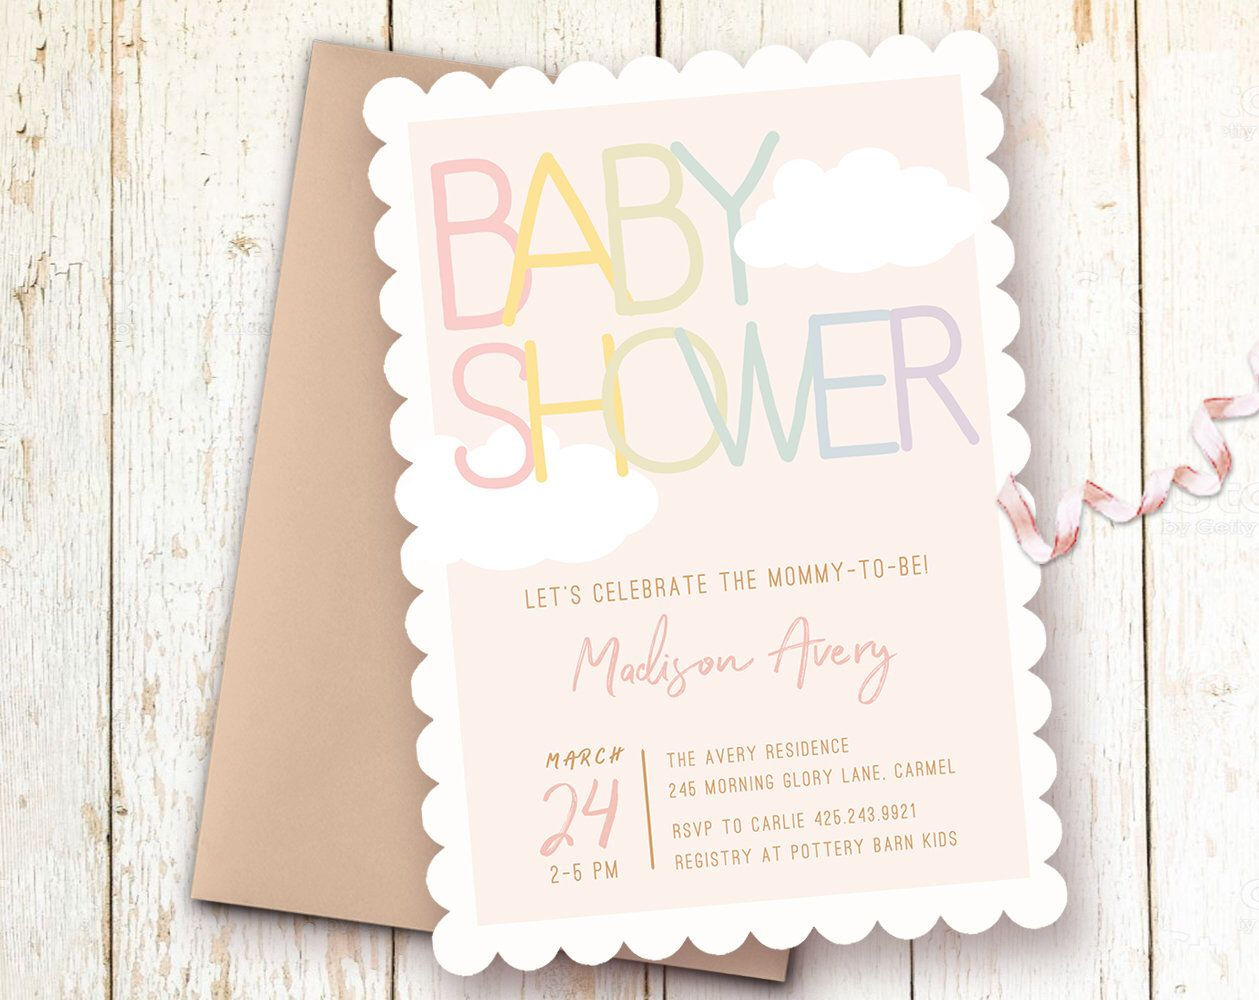 Pastel Theme Baby Shower Invitations, Clouds Baby Shower Invitation, Modern Baby Shower, Pink Baby Shower, Rainbow Baby Shower Invitation